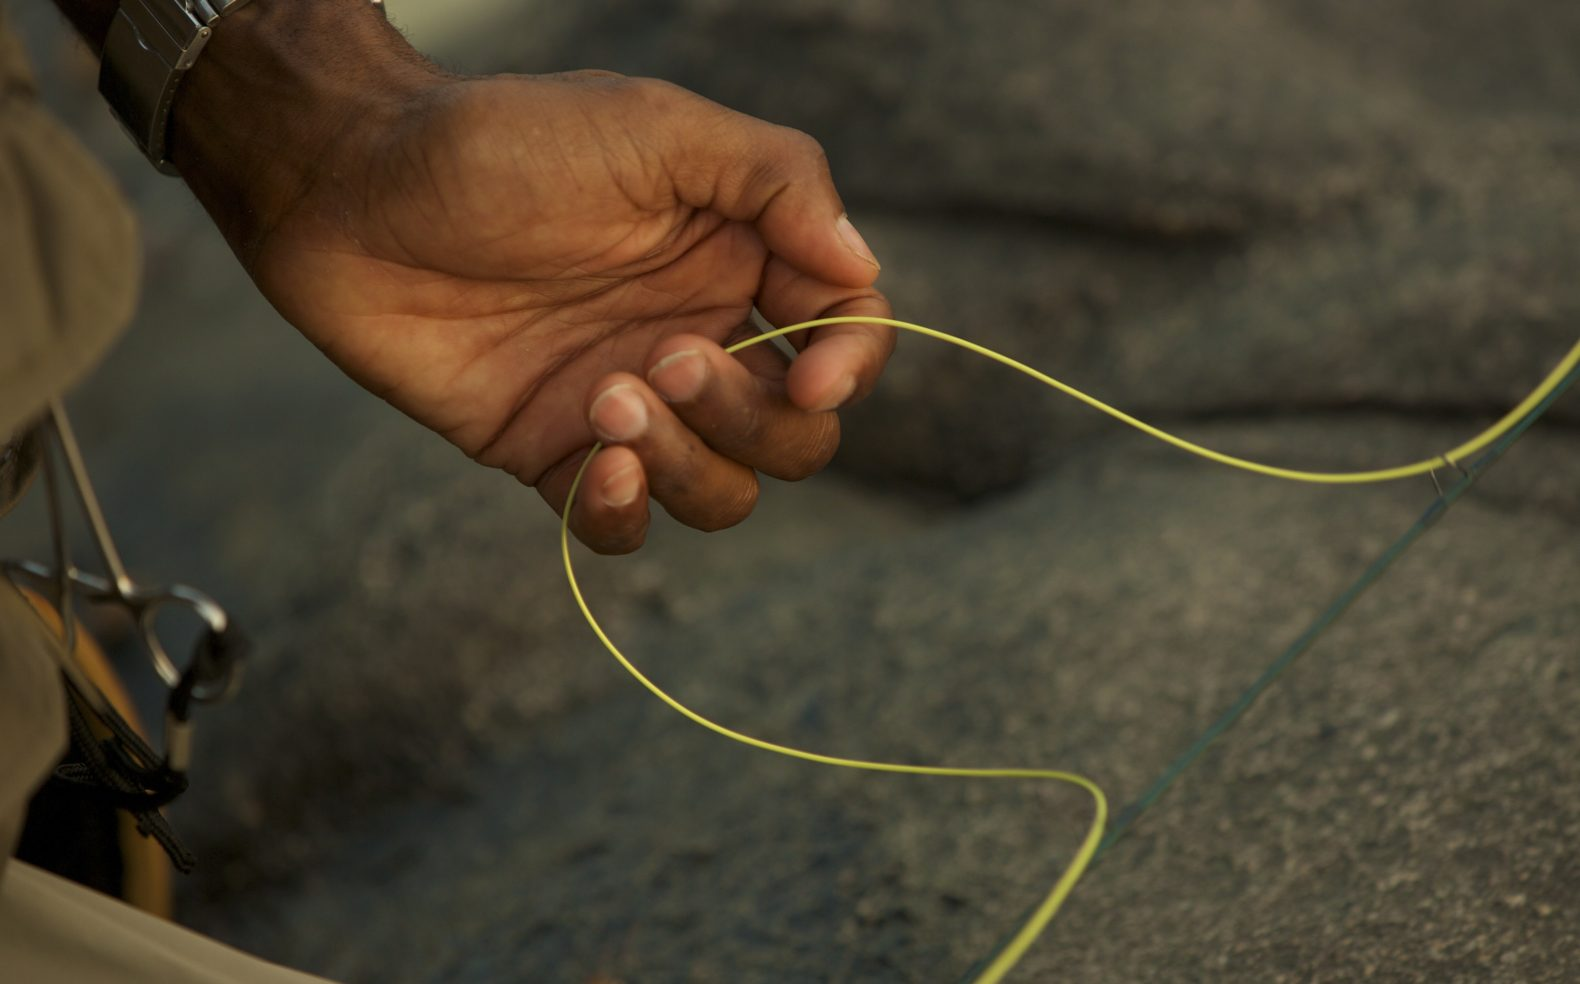 Professional photograph of a fisherman's hand in front of rocks gently holding a yellow fishing line